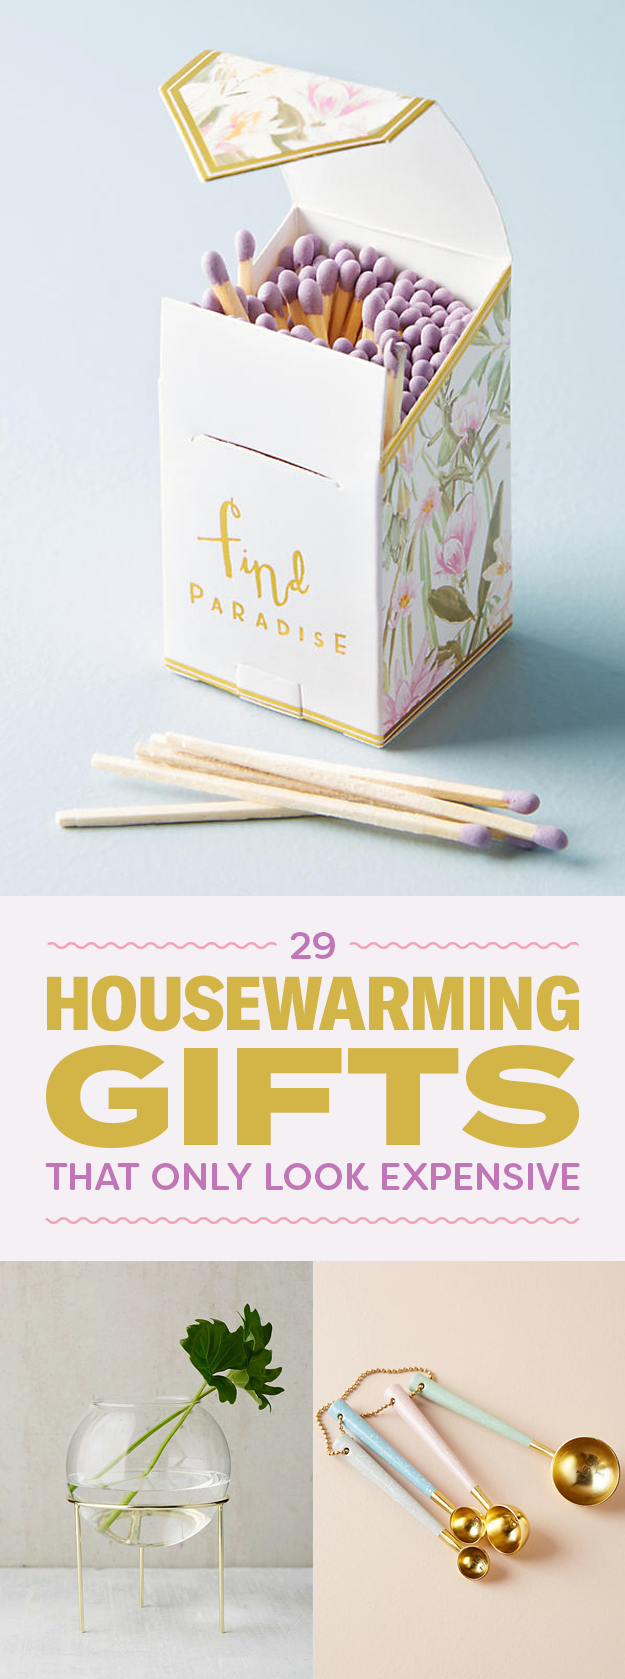 29 Housewarming Gifts That Only Look Expensive